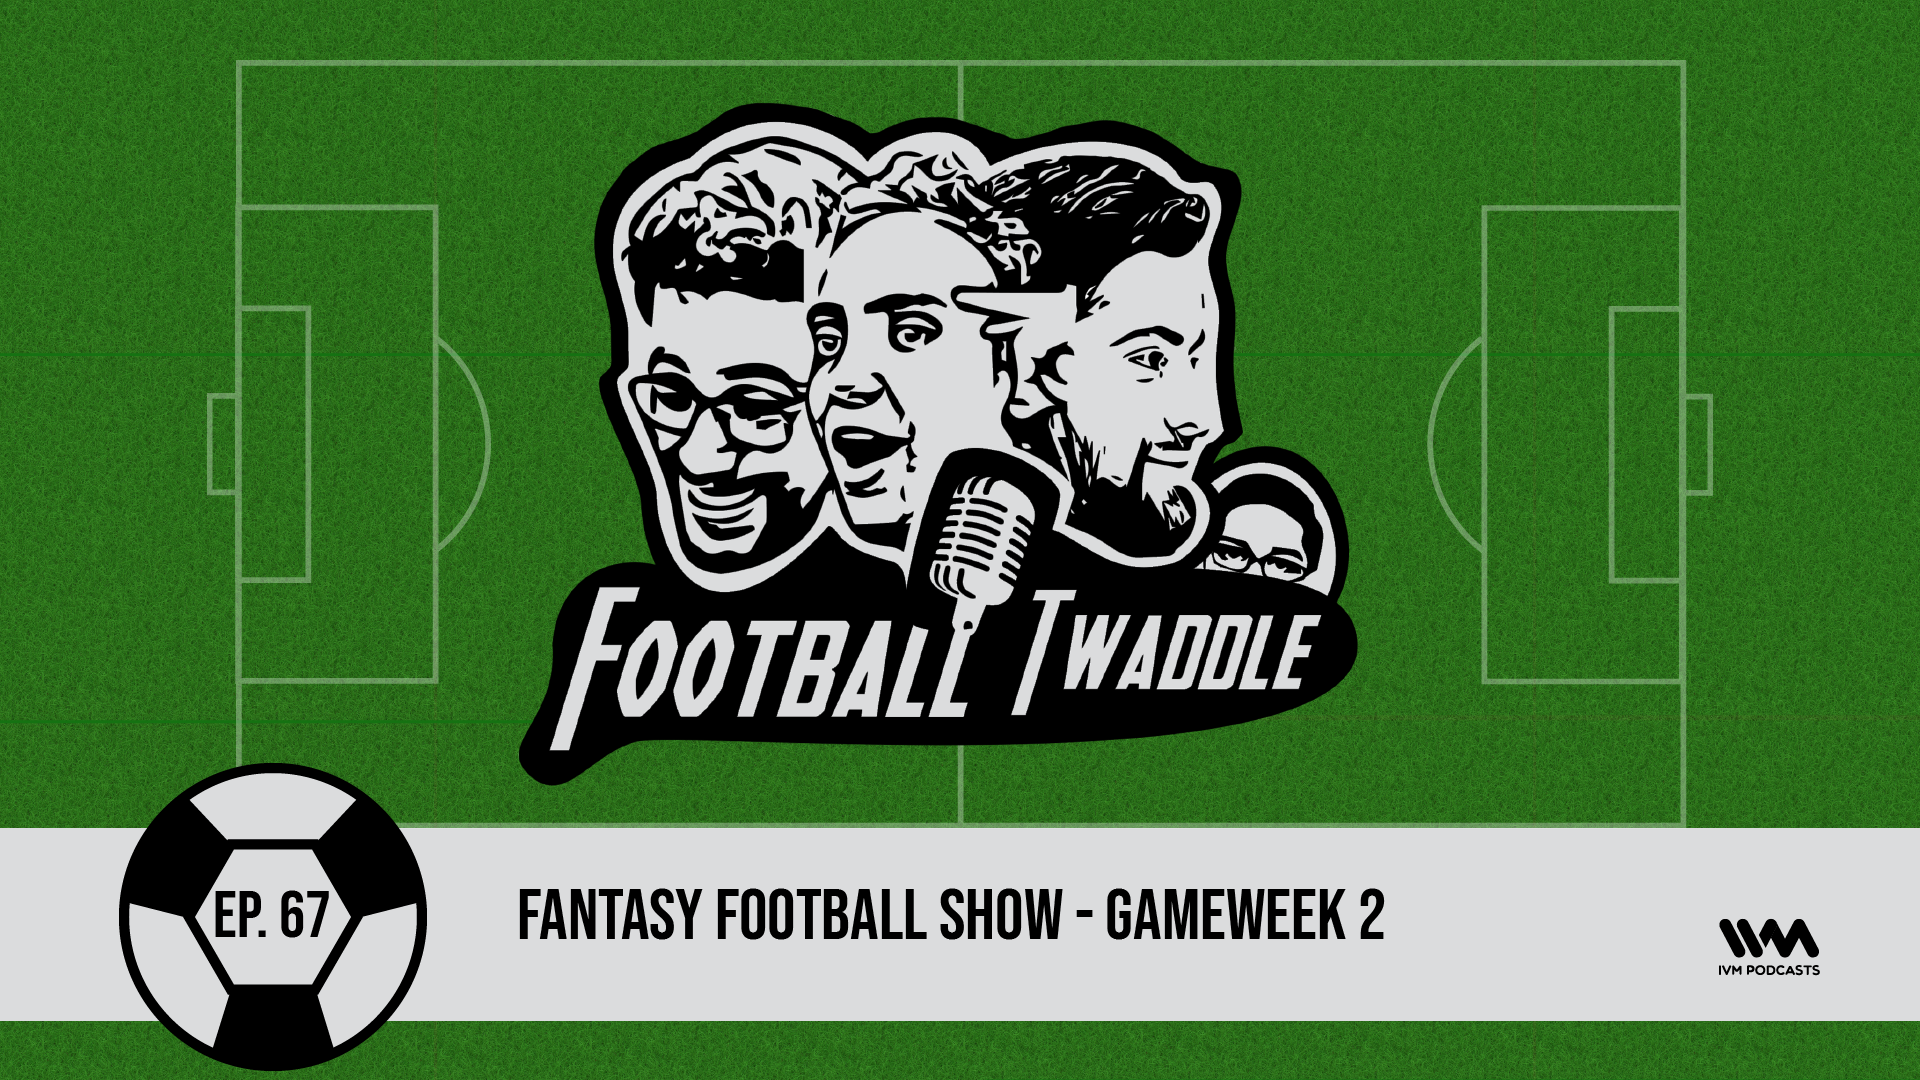 FootballTwaddleEpisode67.png